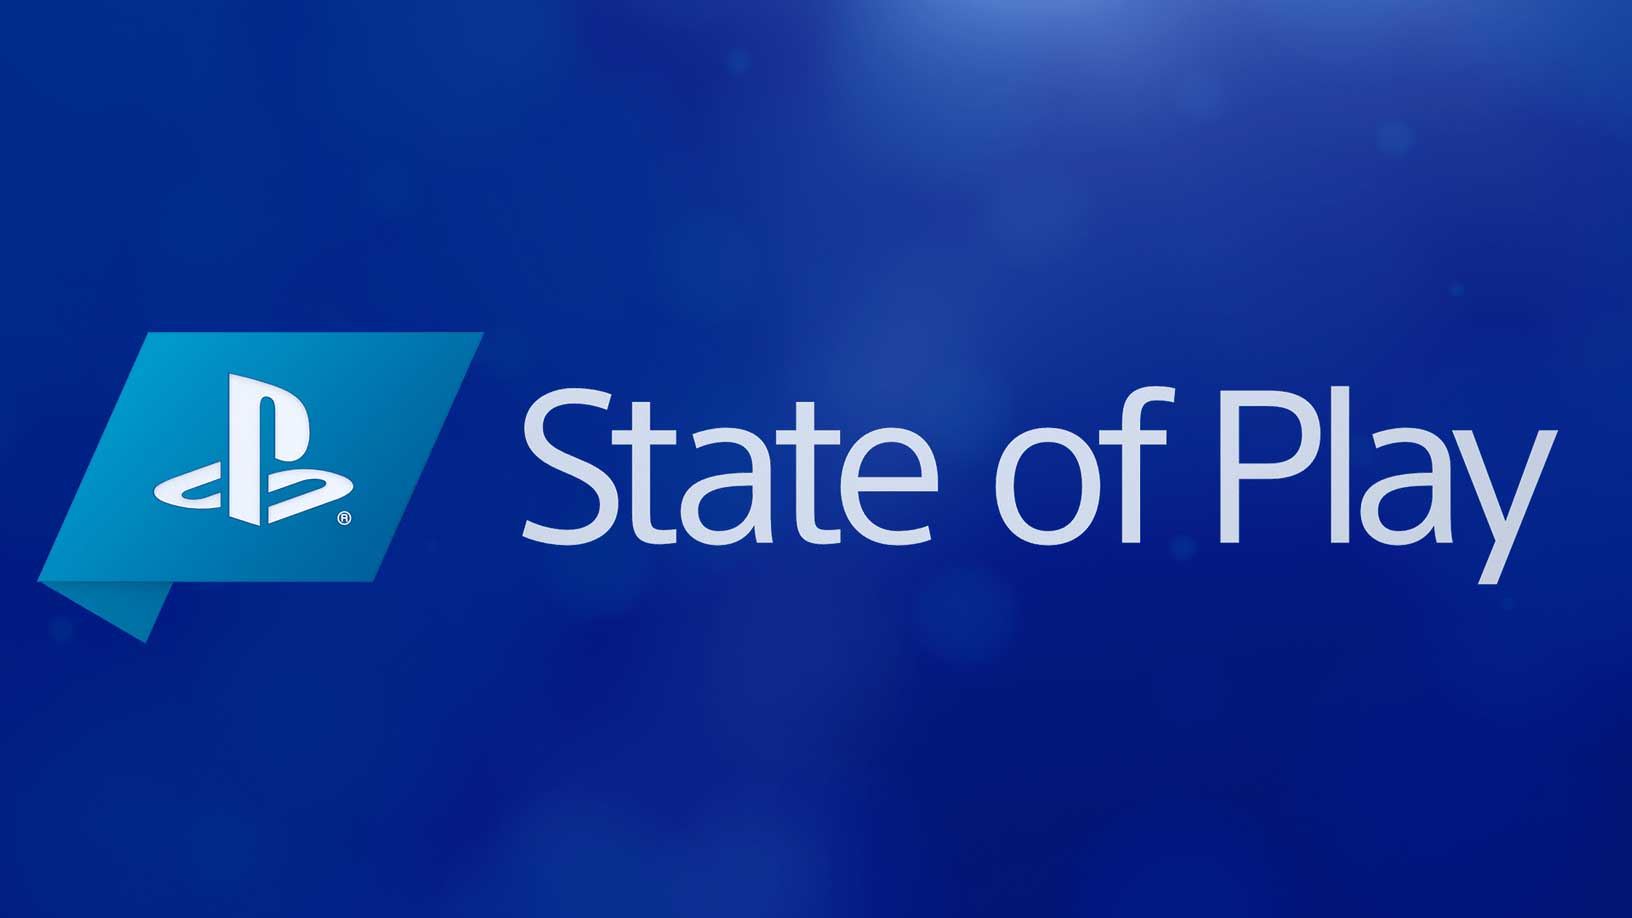 State of Play Logo babt